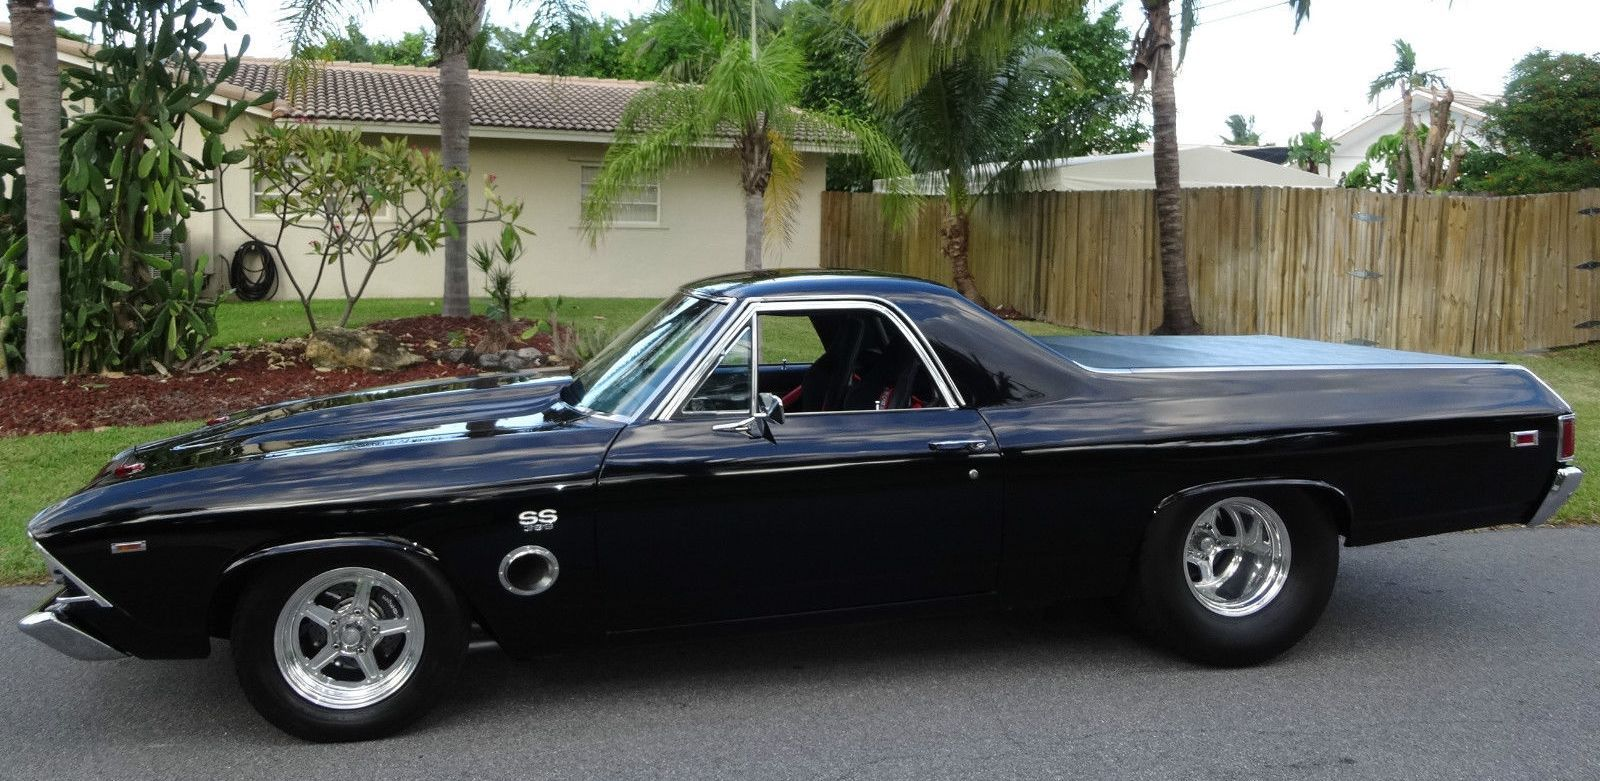 medium resolution of pro street el camino